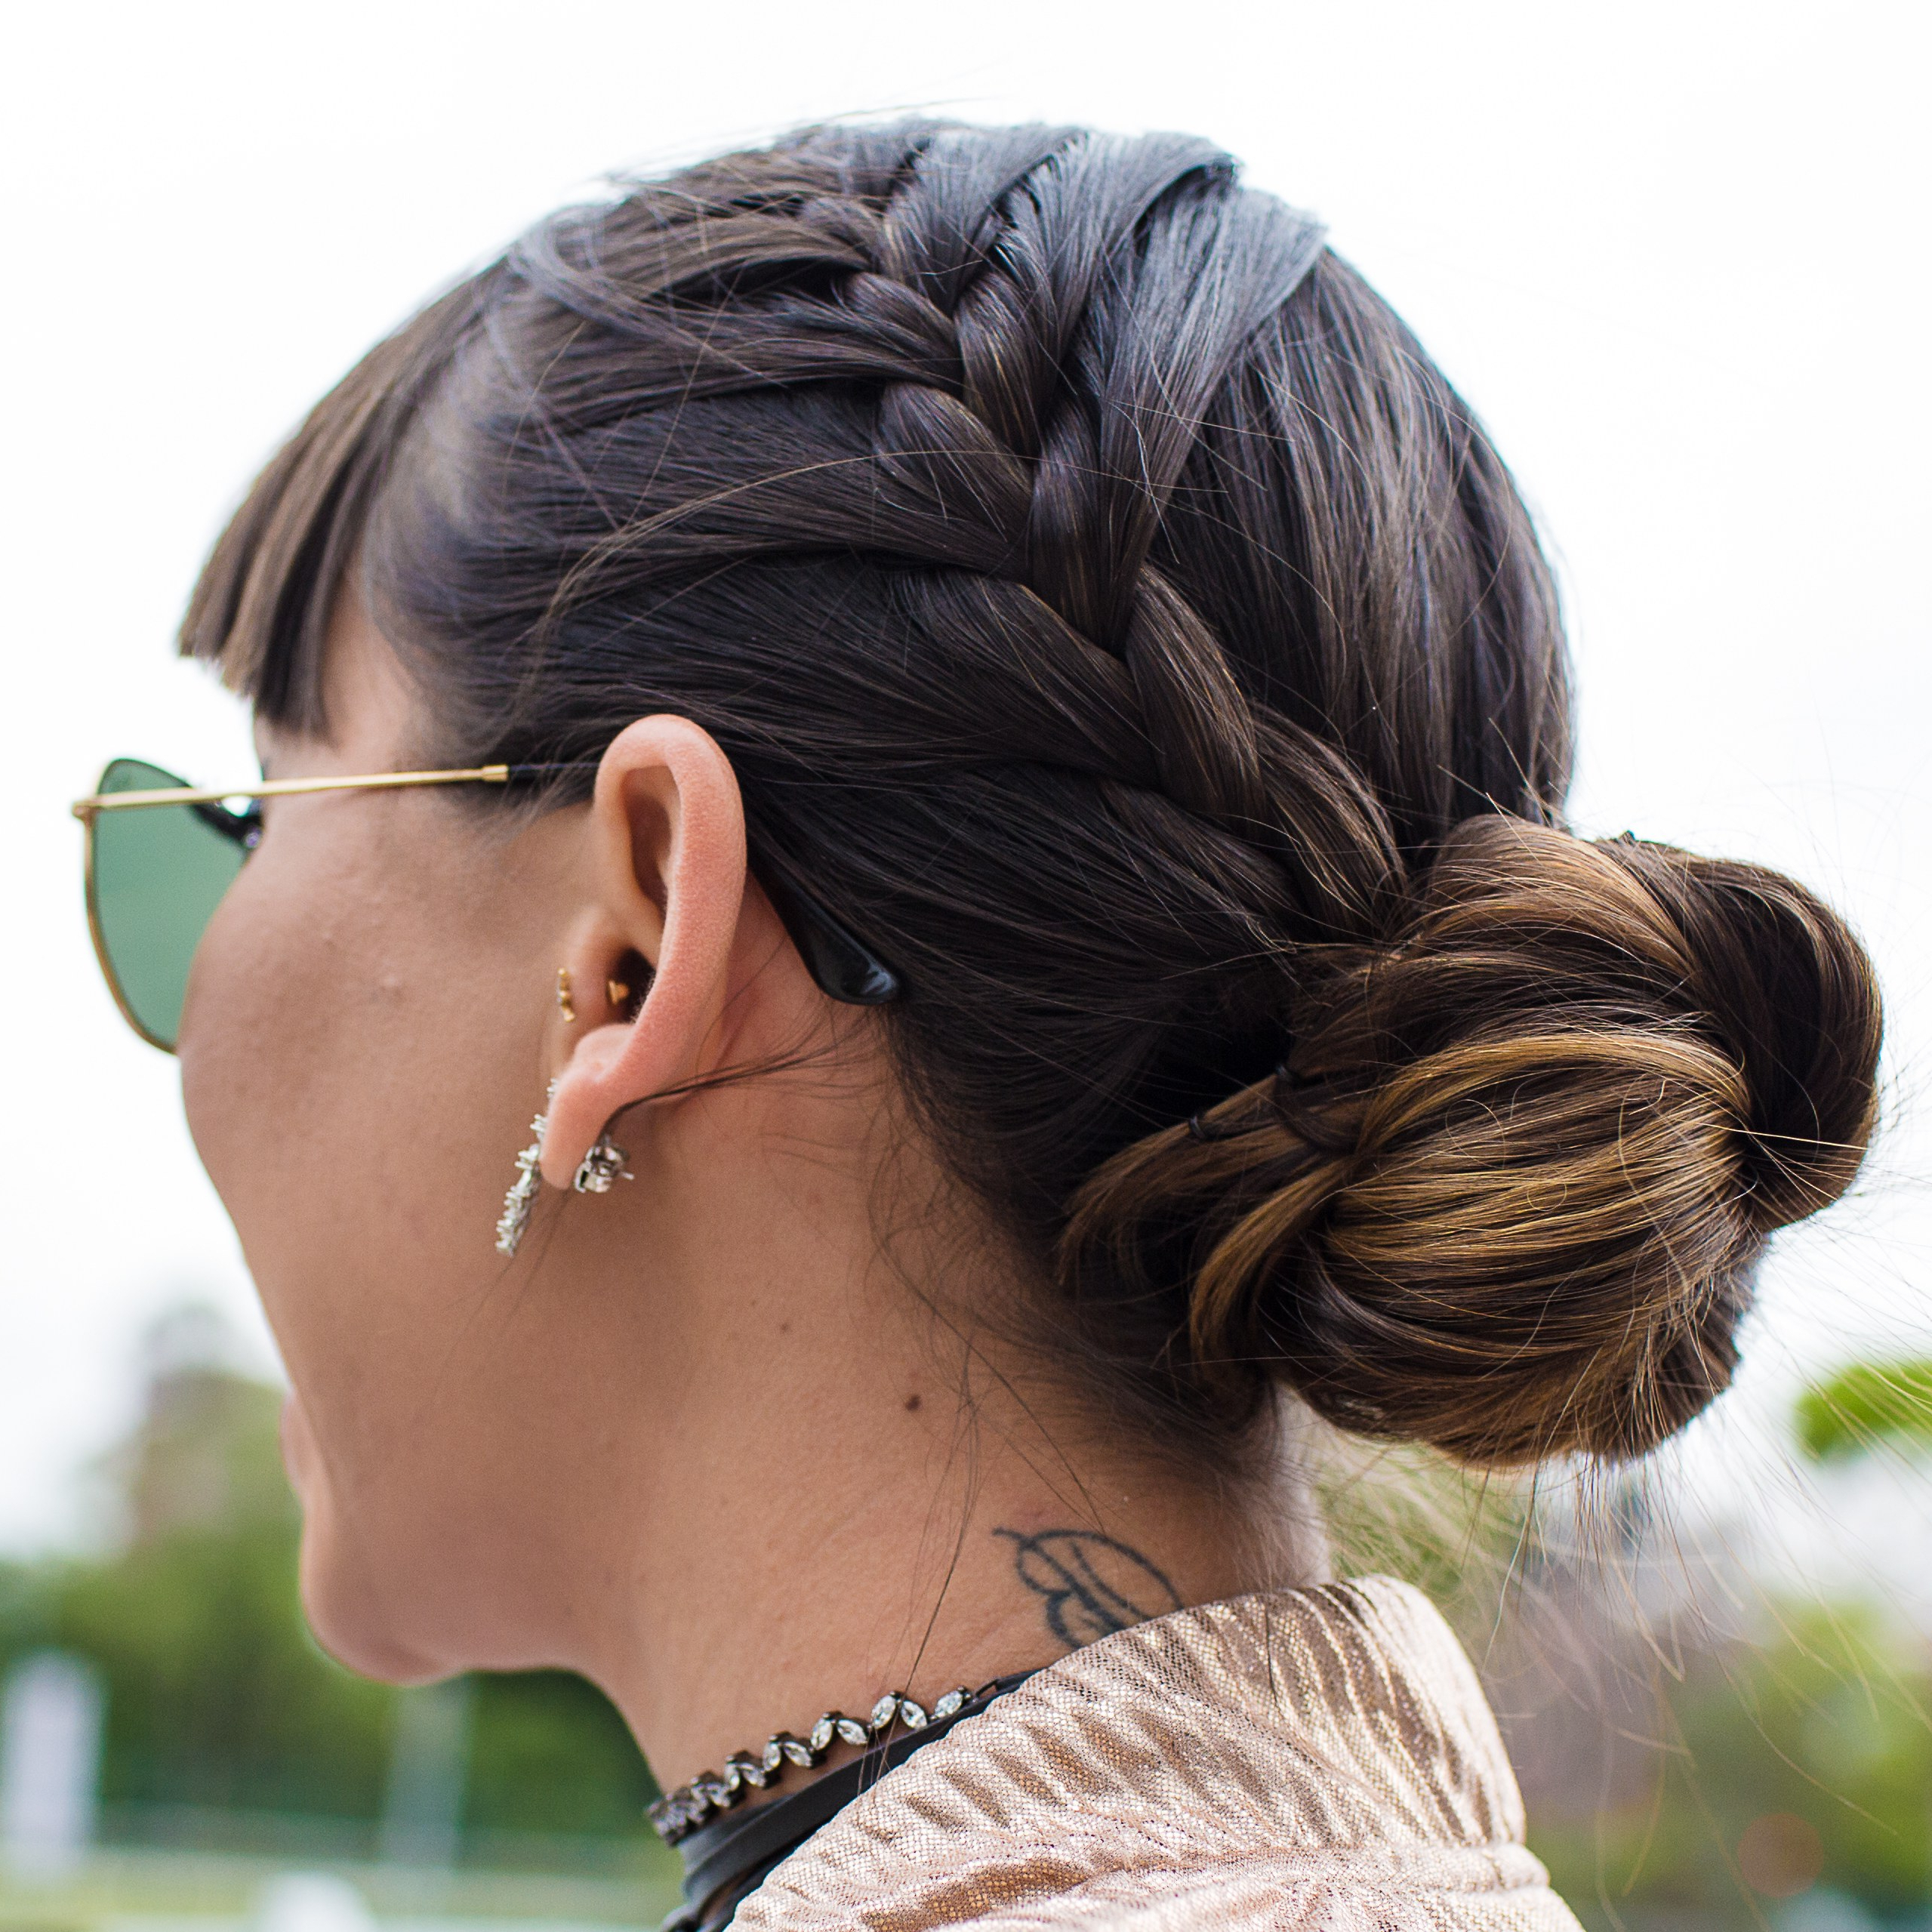 Fashionable Double Headband Braided Hairstyles With Flowers Intended For How To Braid Hair – 10 Tutorials You Can Do Yourself (View 11 of 20)